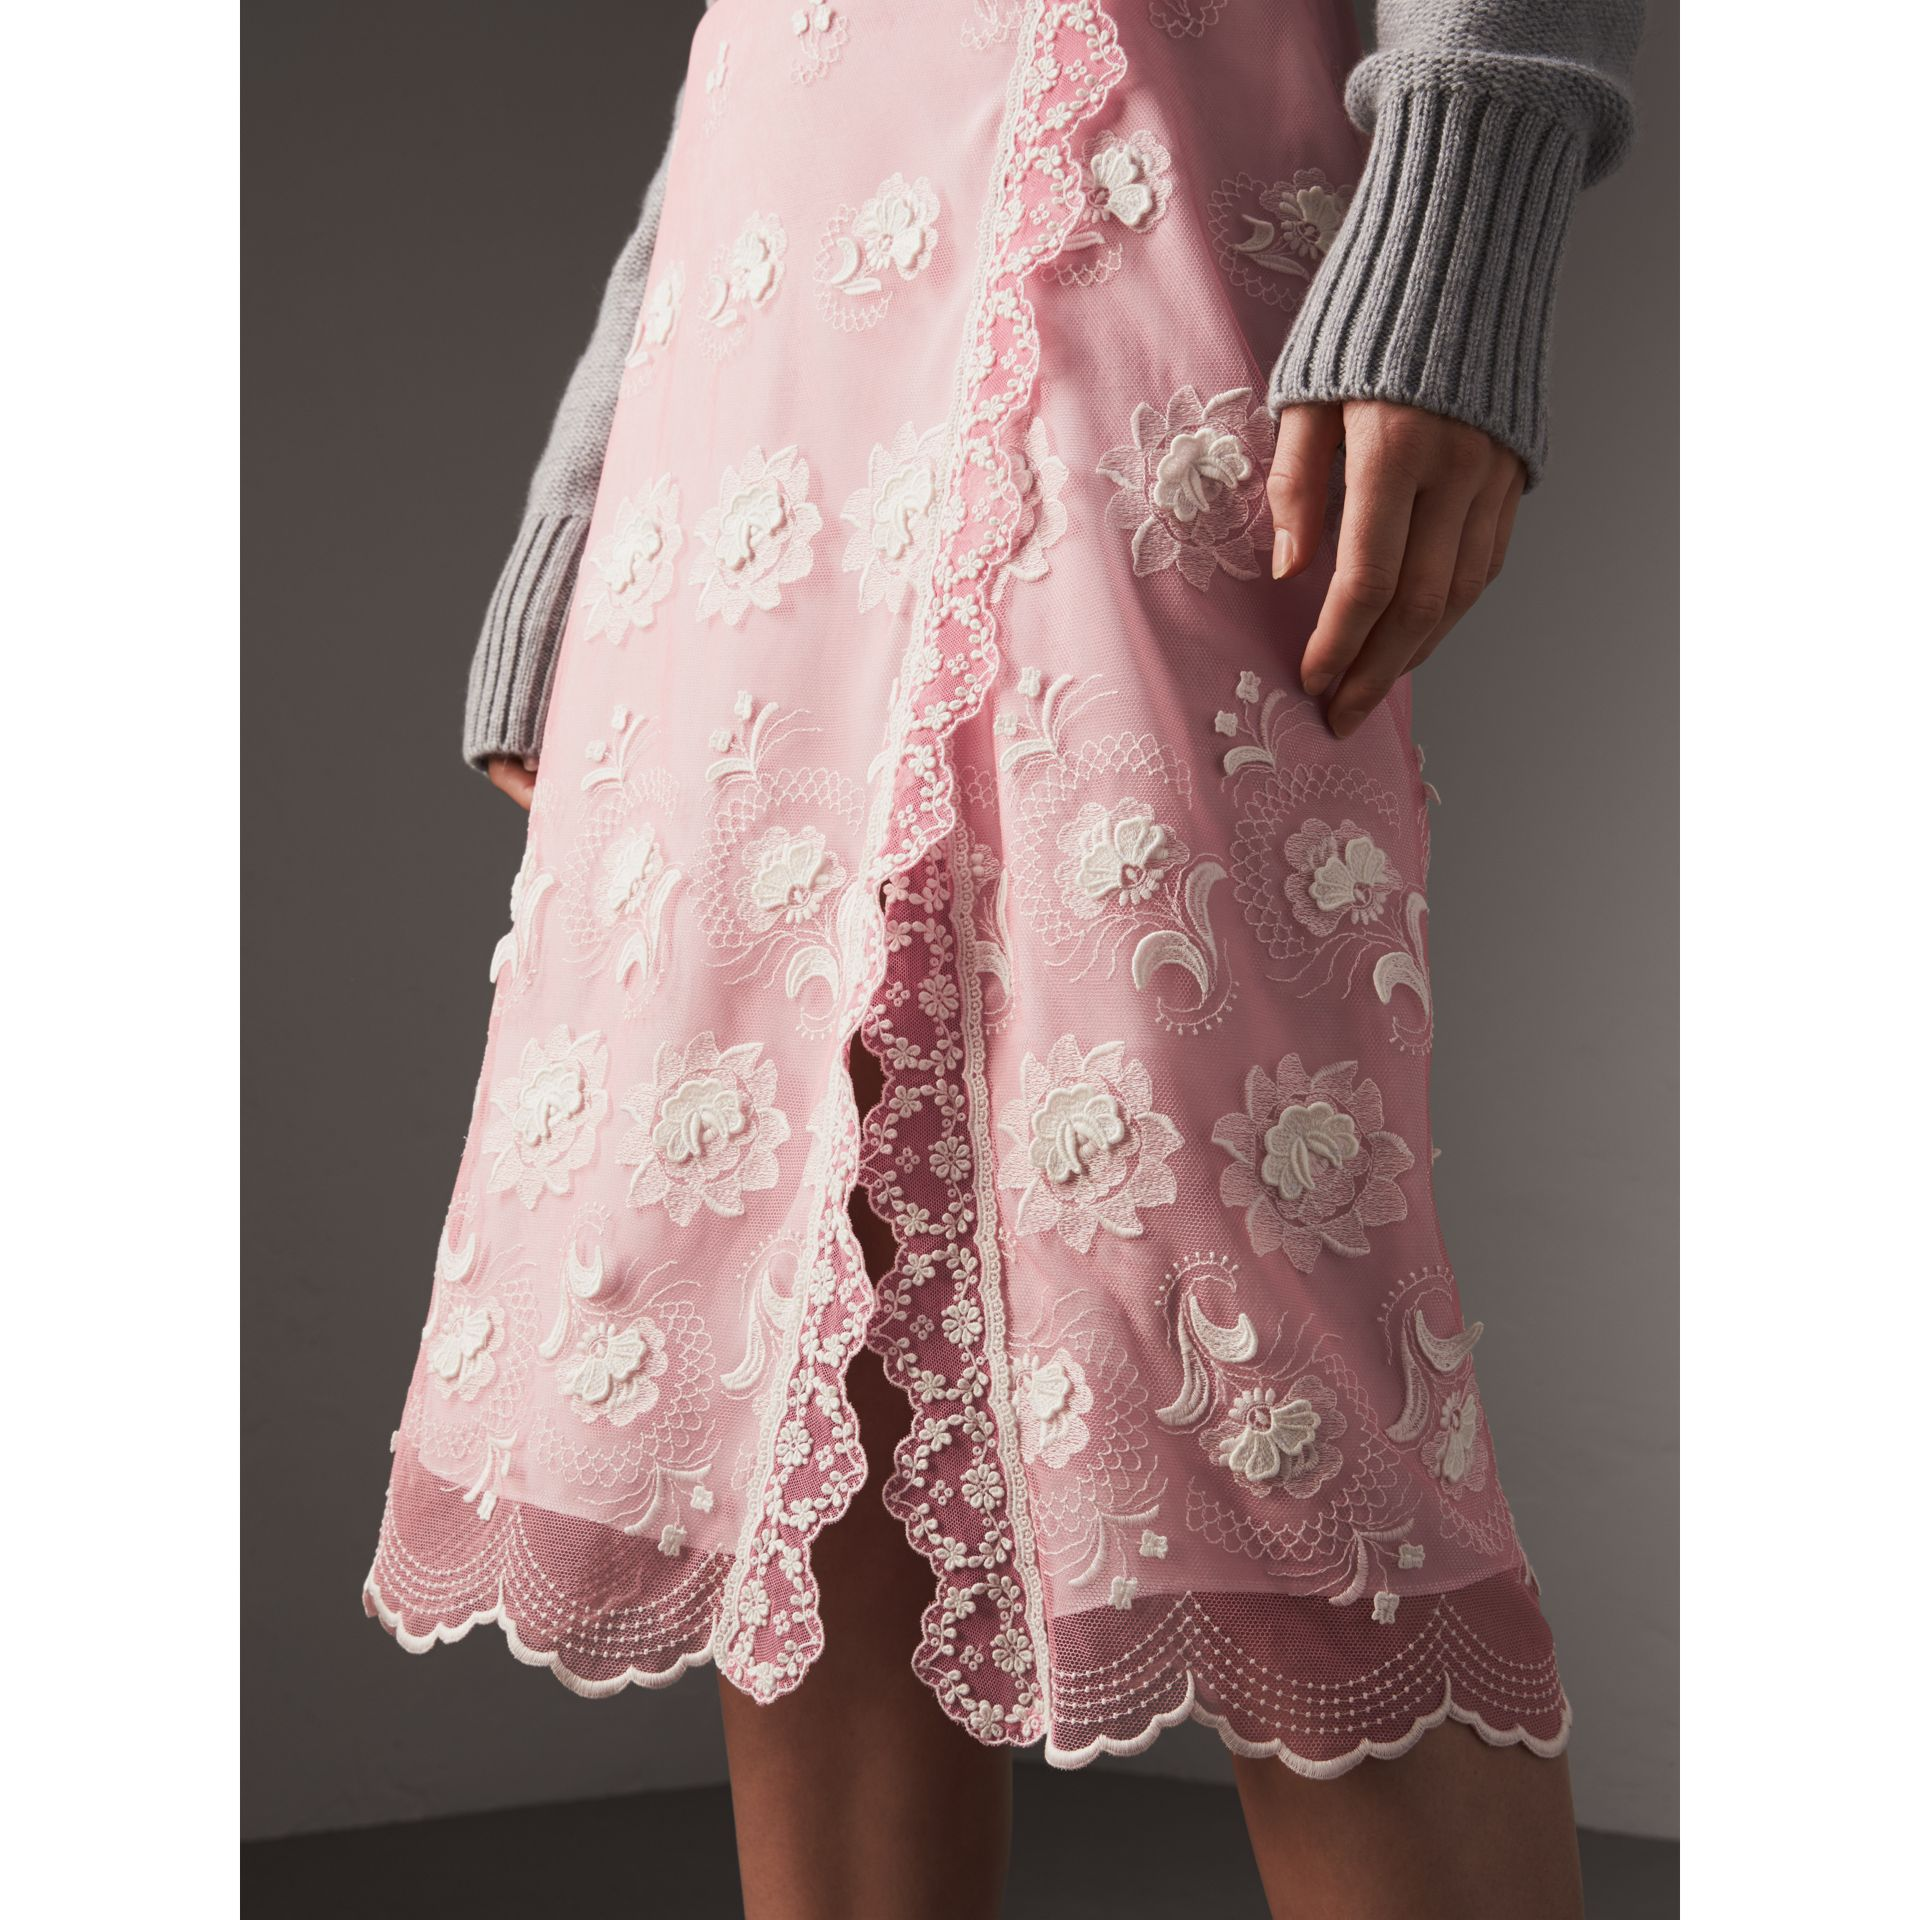 Chantilly Lace Trim Embroidered Tulle Skirt in Rose Pink/white - Women | Burberry - gallery image 1